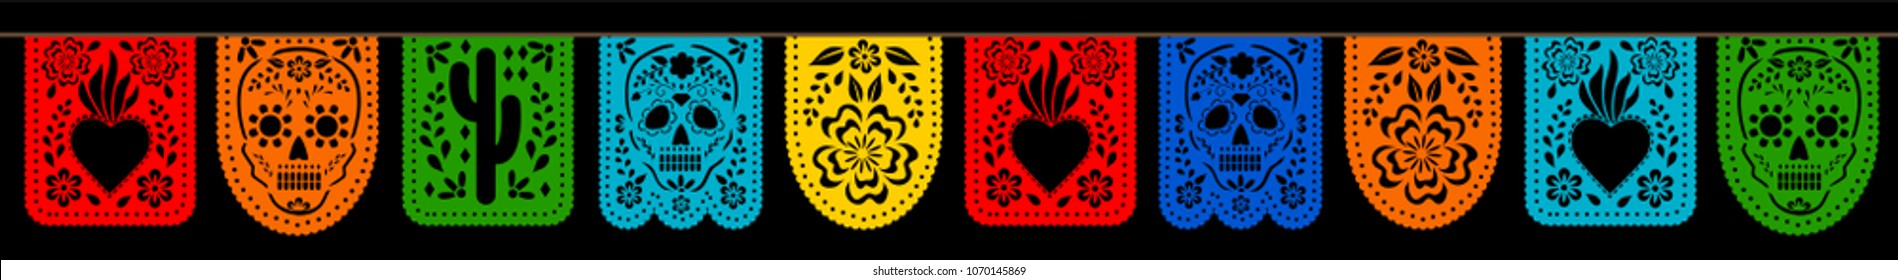 Mexican bunting for Day of the Dead (Dia de los Muertos). Horizontal web banner